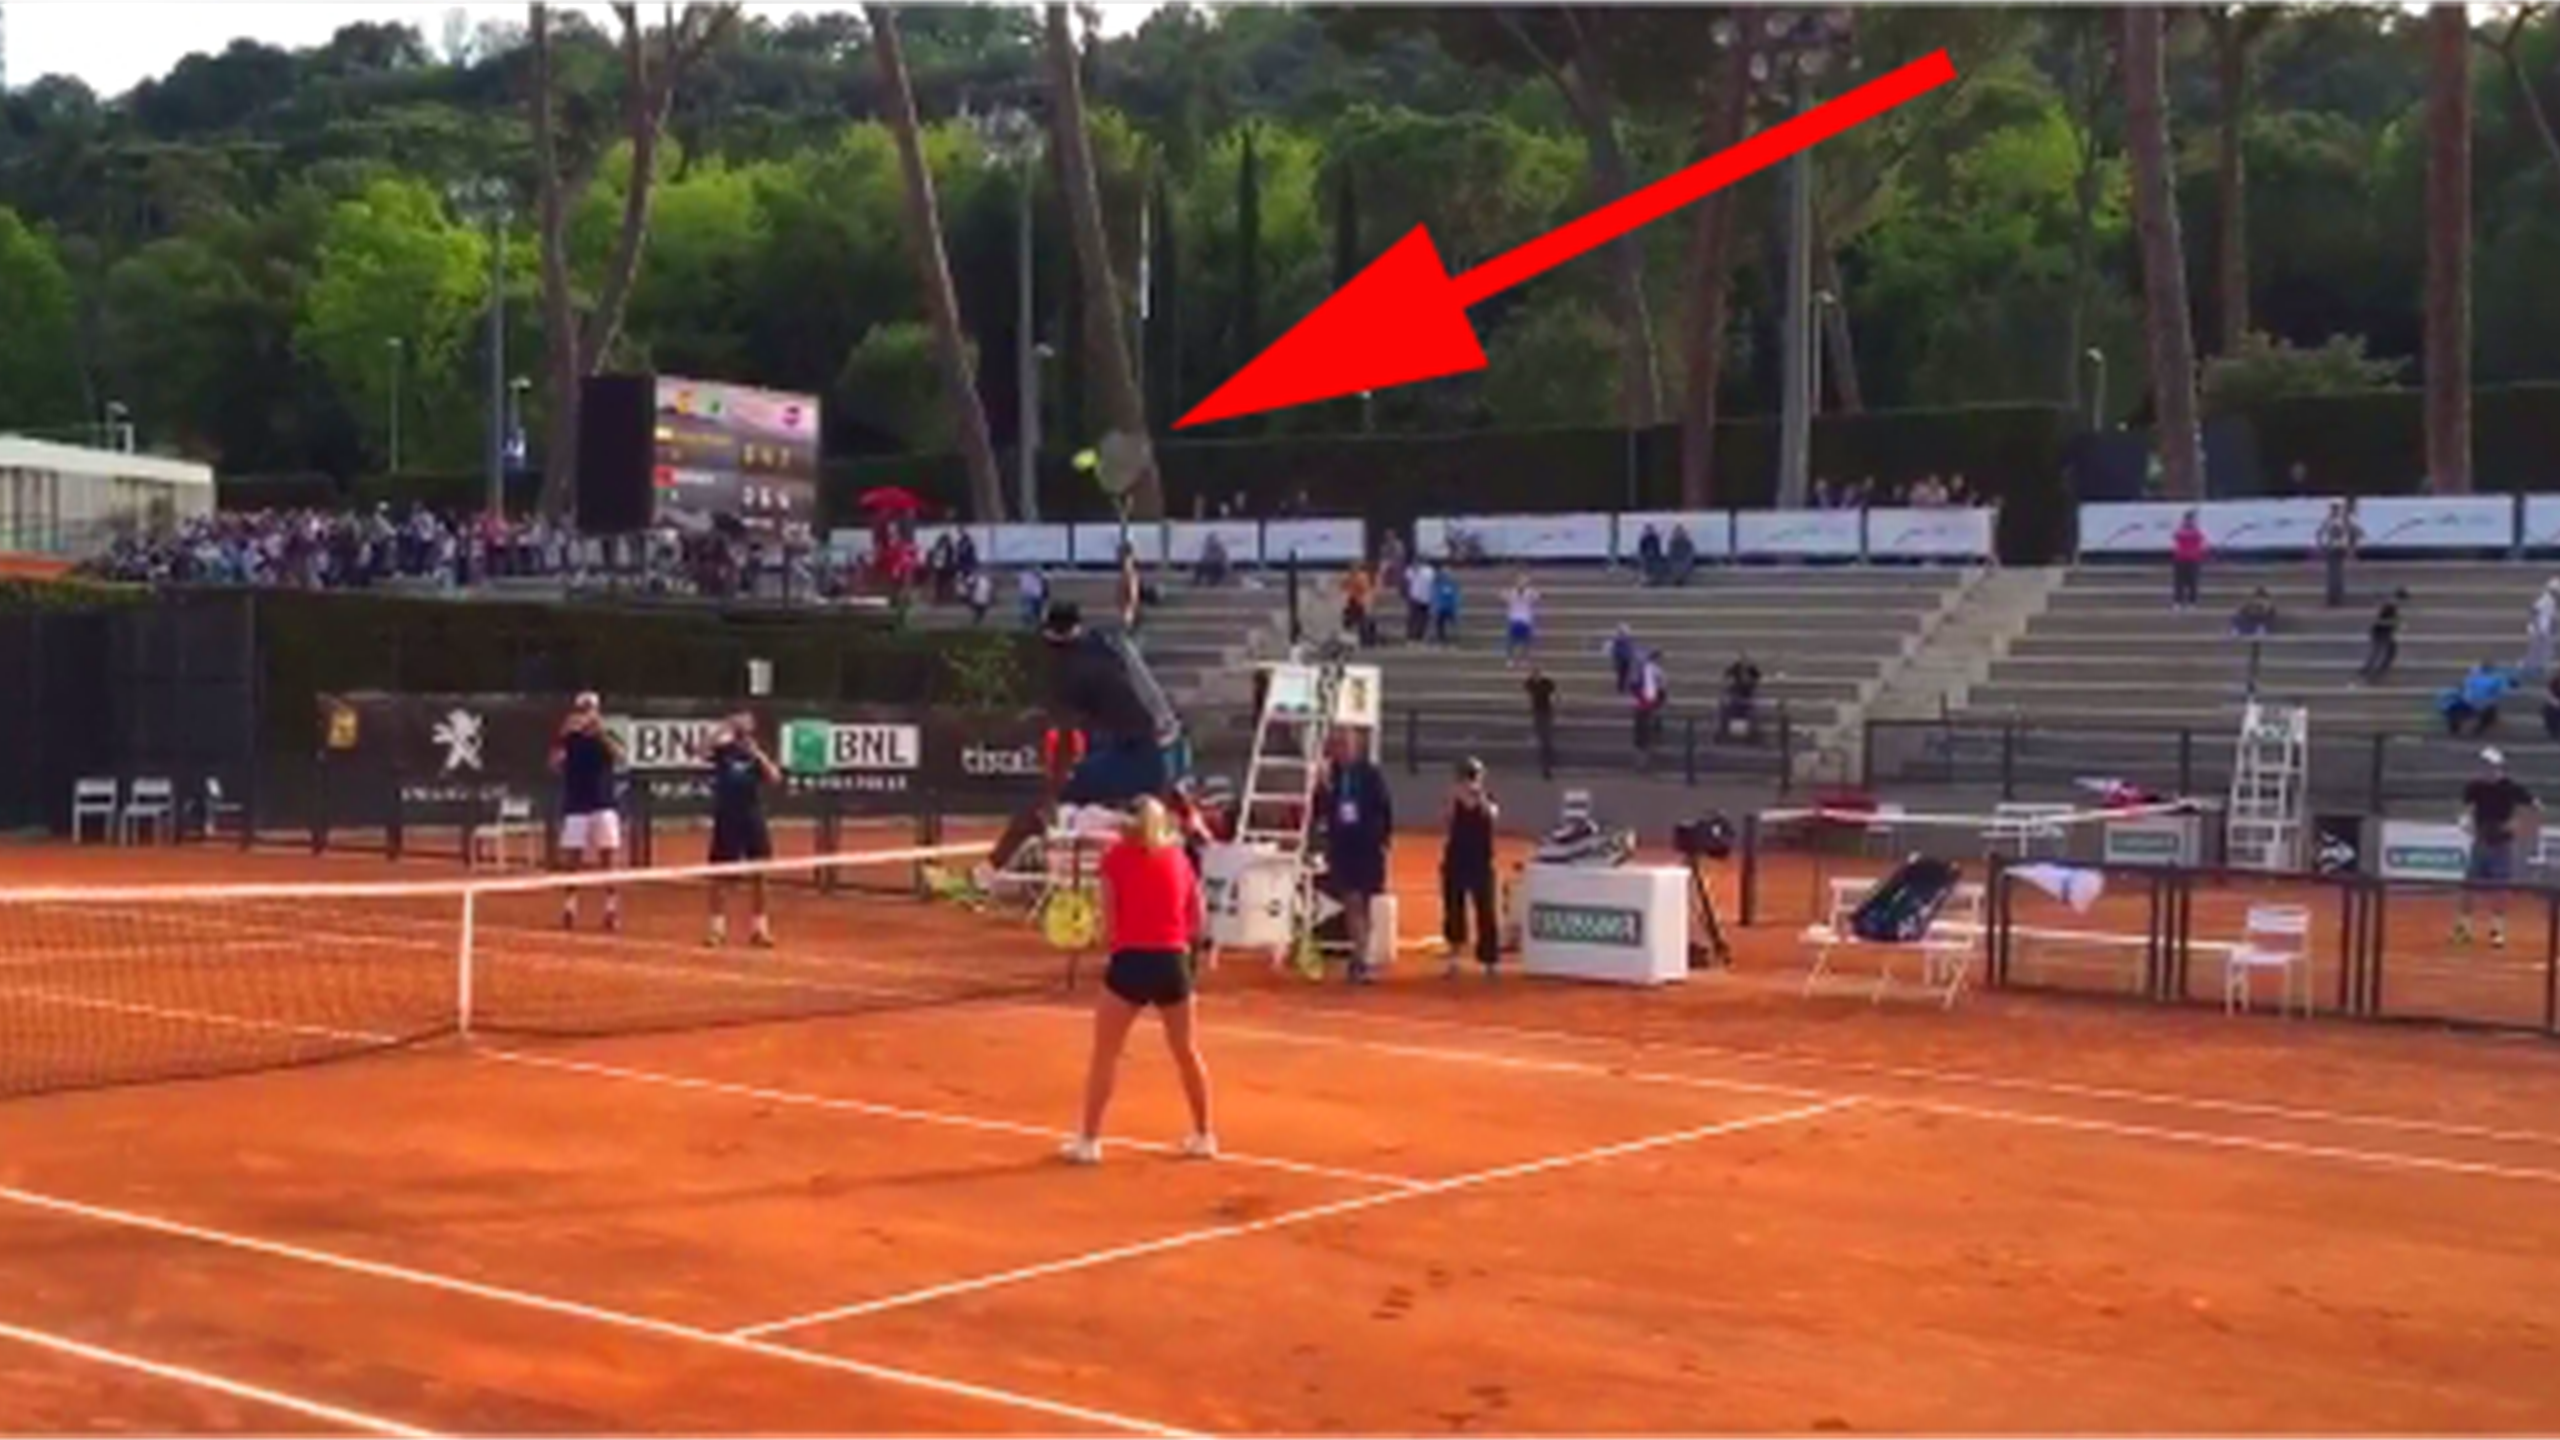 Gael Monfils hurdles mixed doubles partner to unleash amazing smash (Twitter)